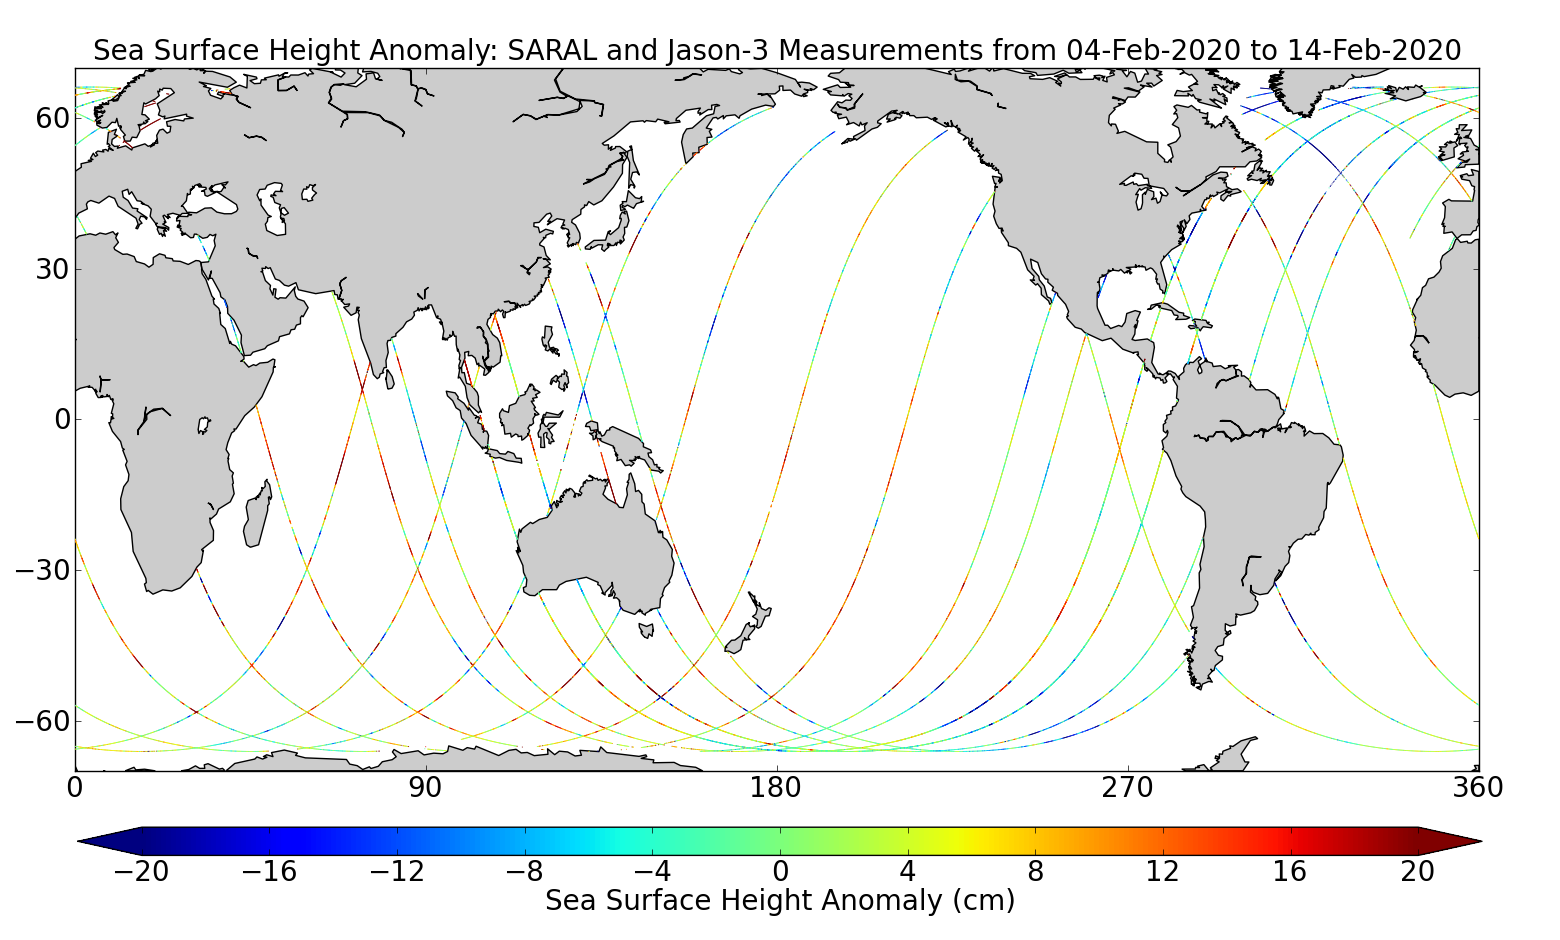 Sea Surface Height Anomaly: SARAL and Jason-3 Measurements from 04-Feb-2020 to 14-Feb-2020